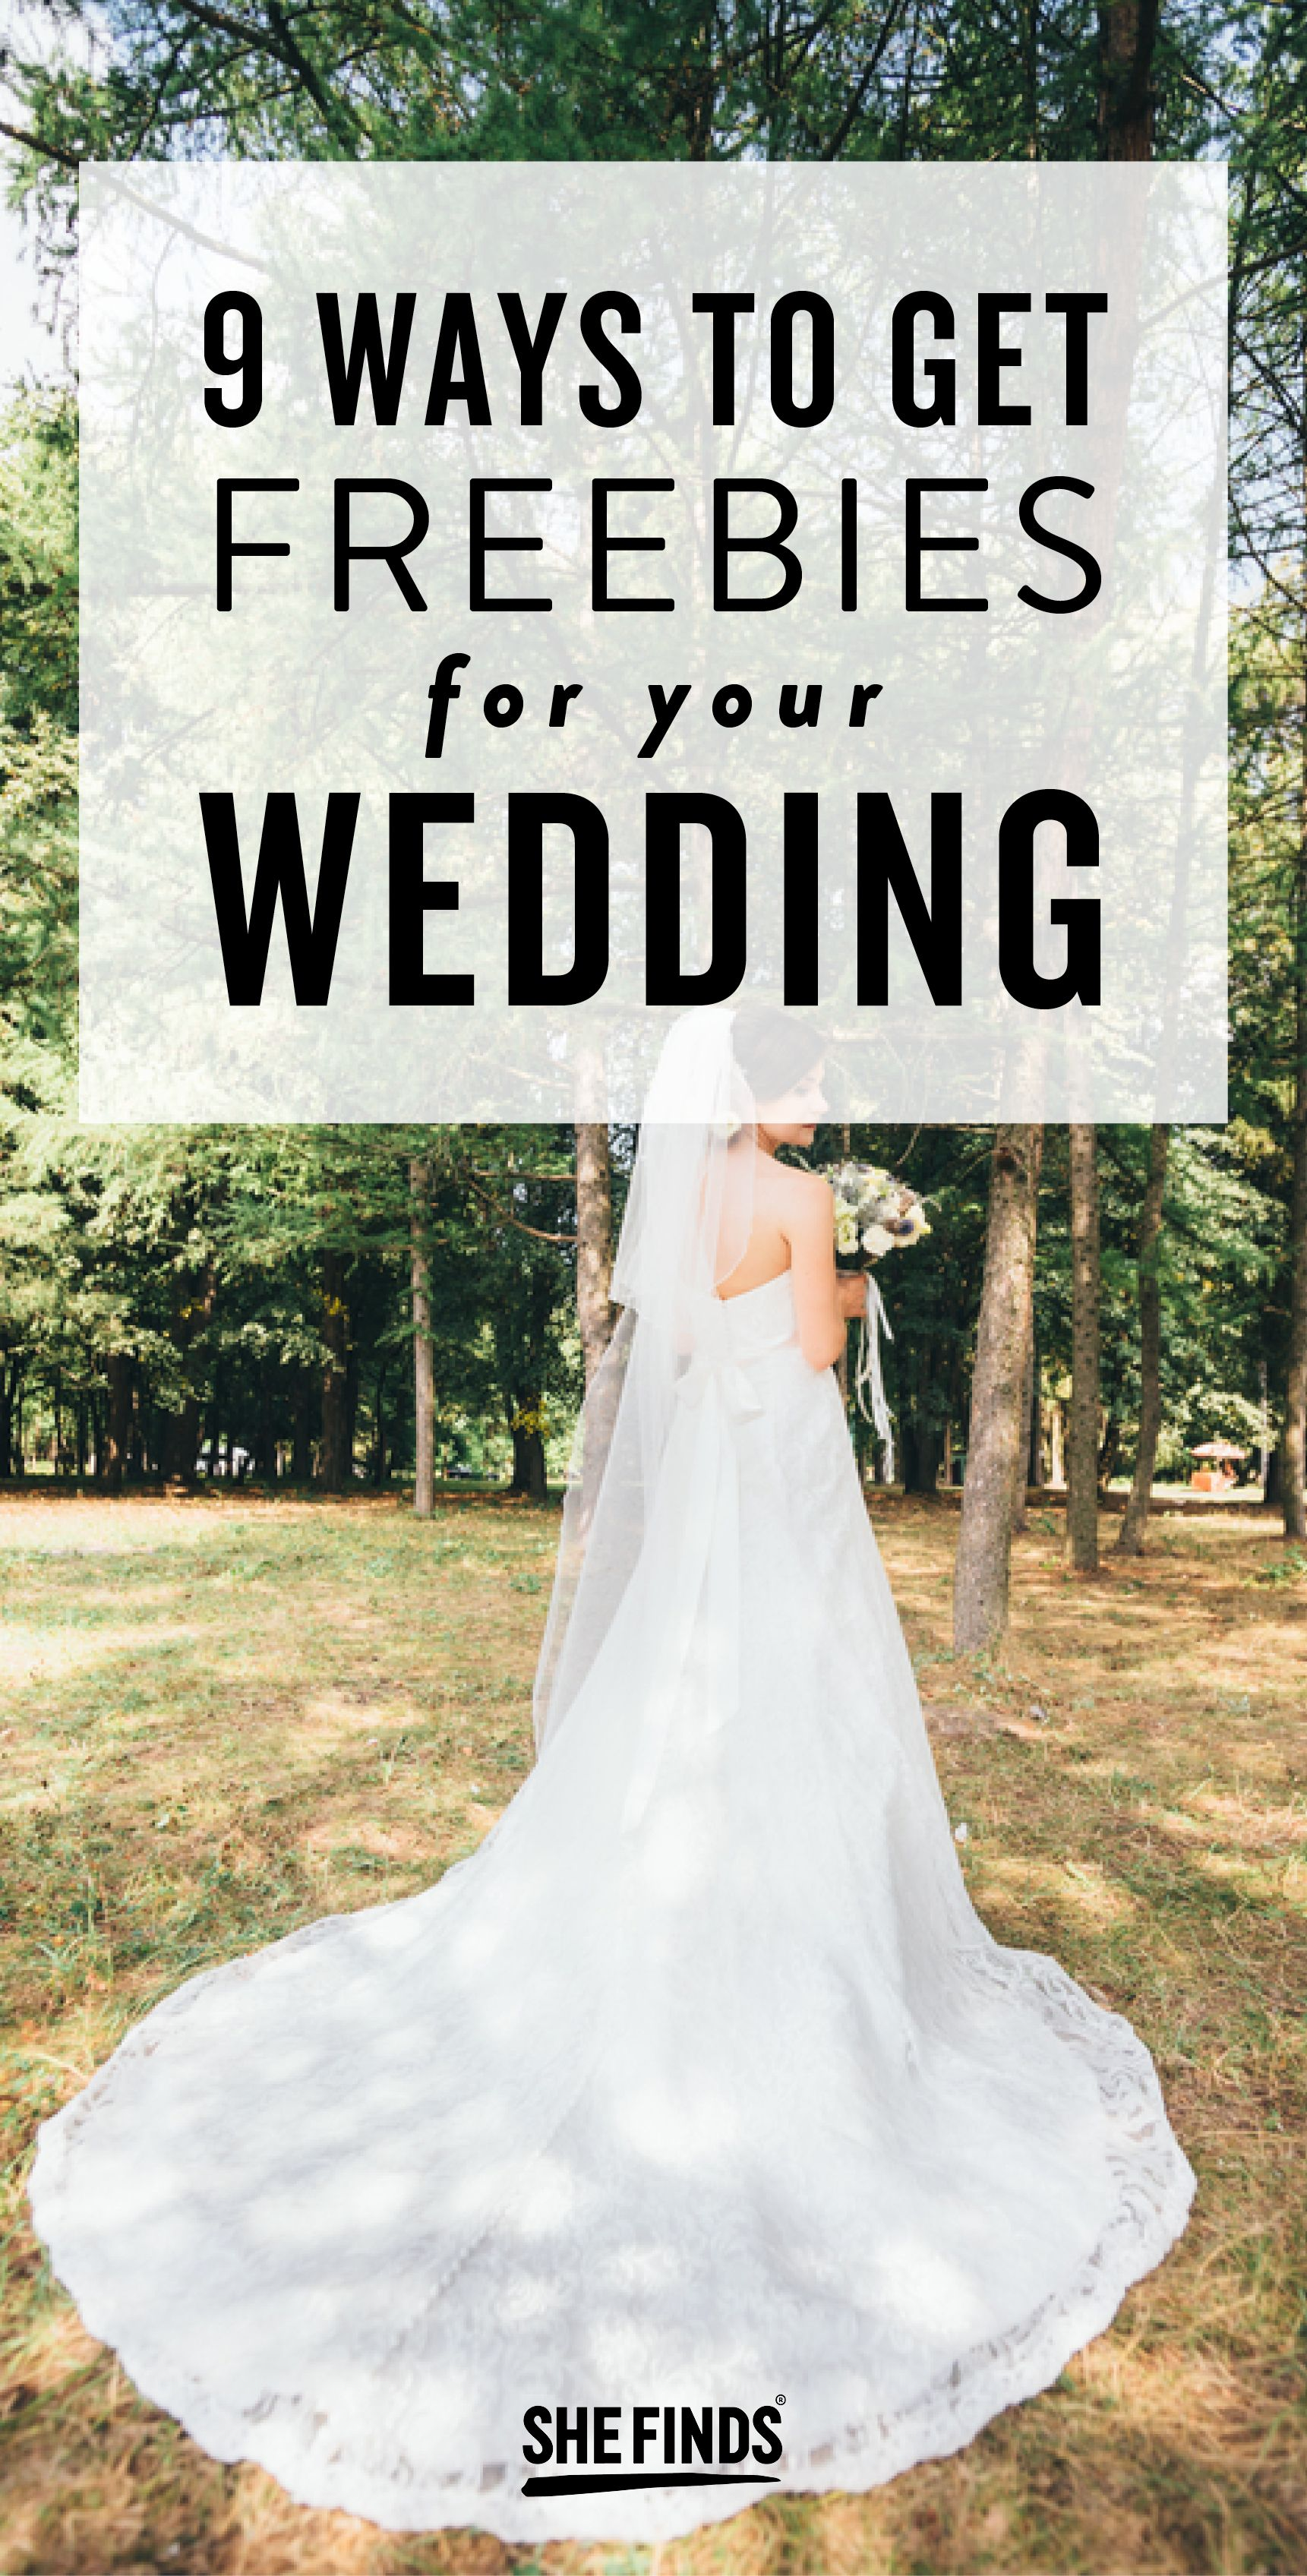 9 Ways To Get Freebies For Your Wedding Wedding Freebies Wedding Wedding Deals